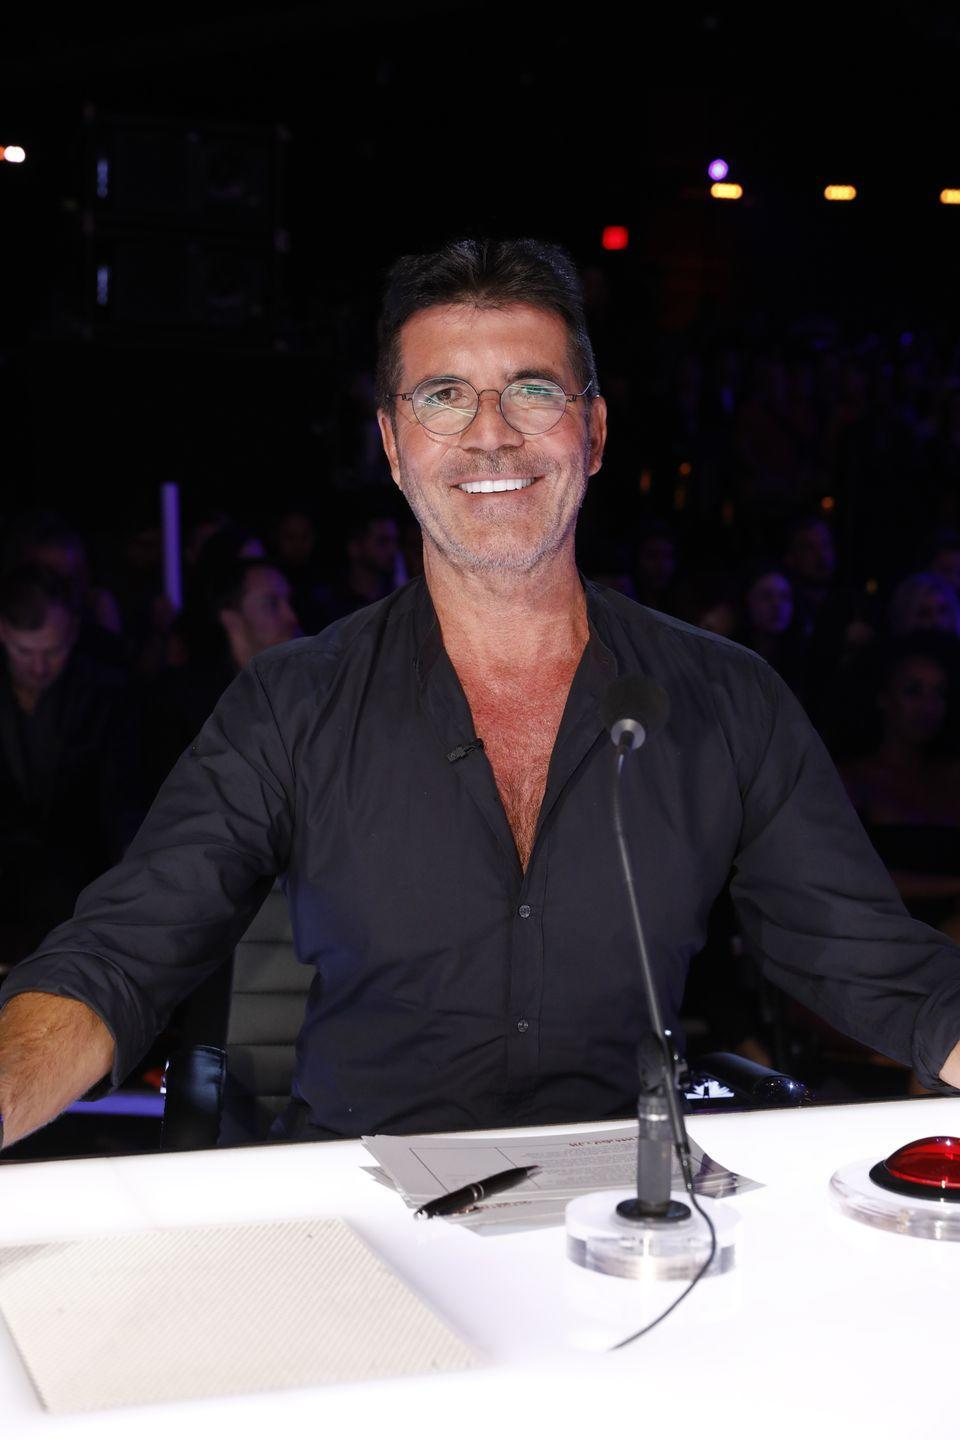 <p><em>America's Got Talent </em>judge Simon Cowell was born on this date back in 1959. </p><p>Also on this day: <br>John Mellencamp <br>Thom Yorke <br>Toni Braxton <br></p>